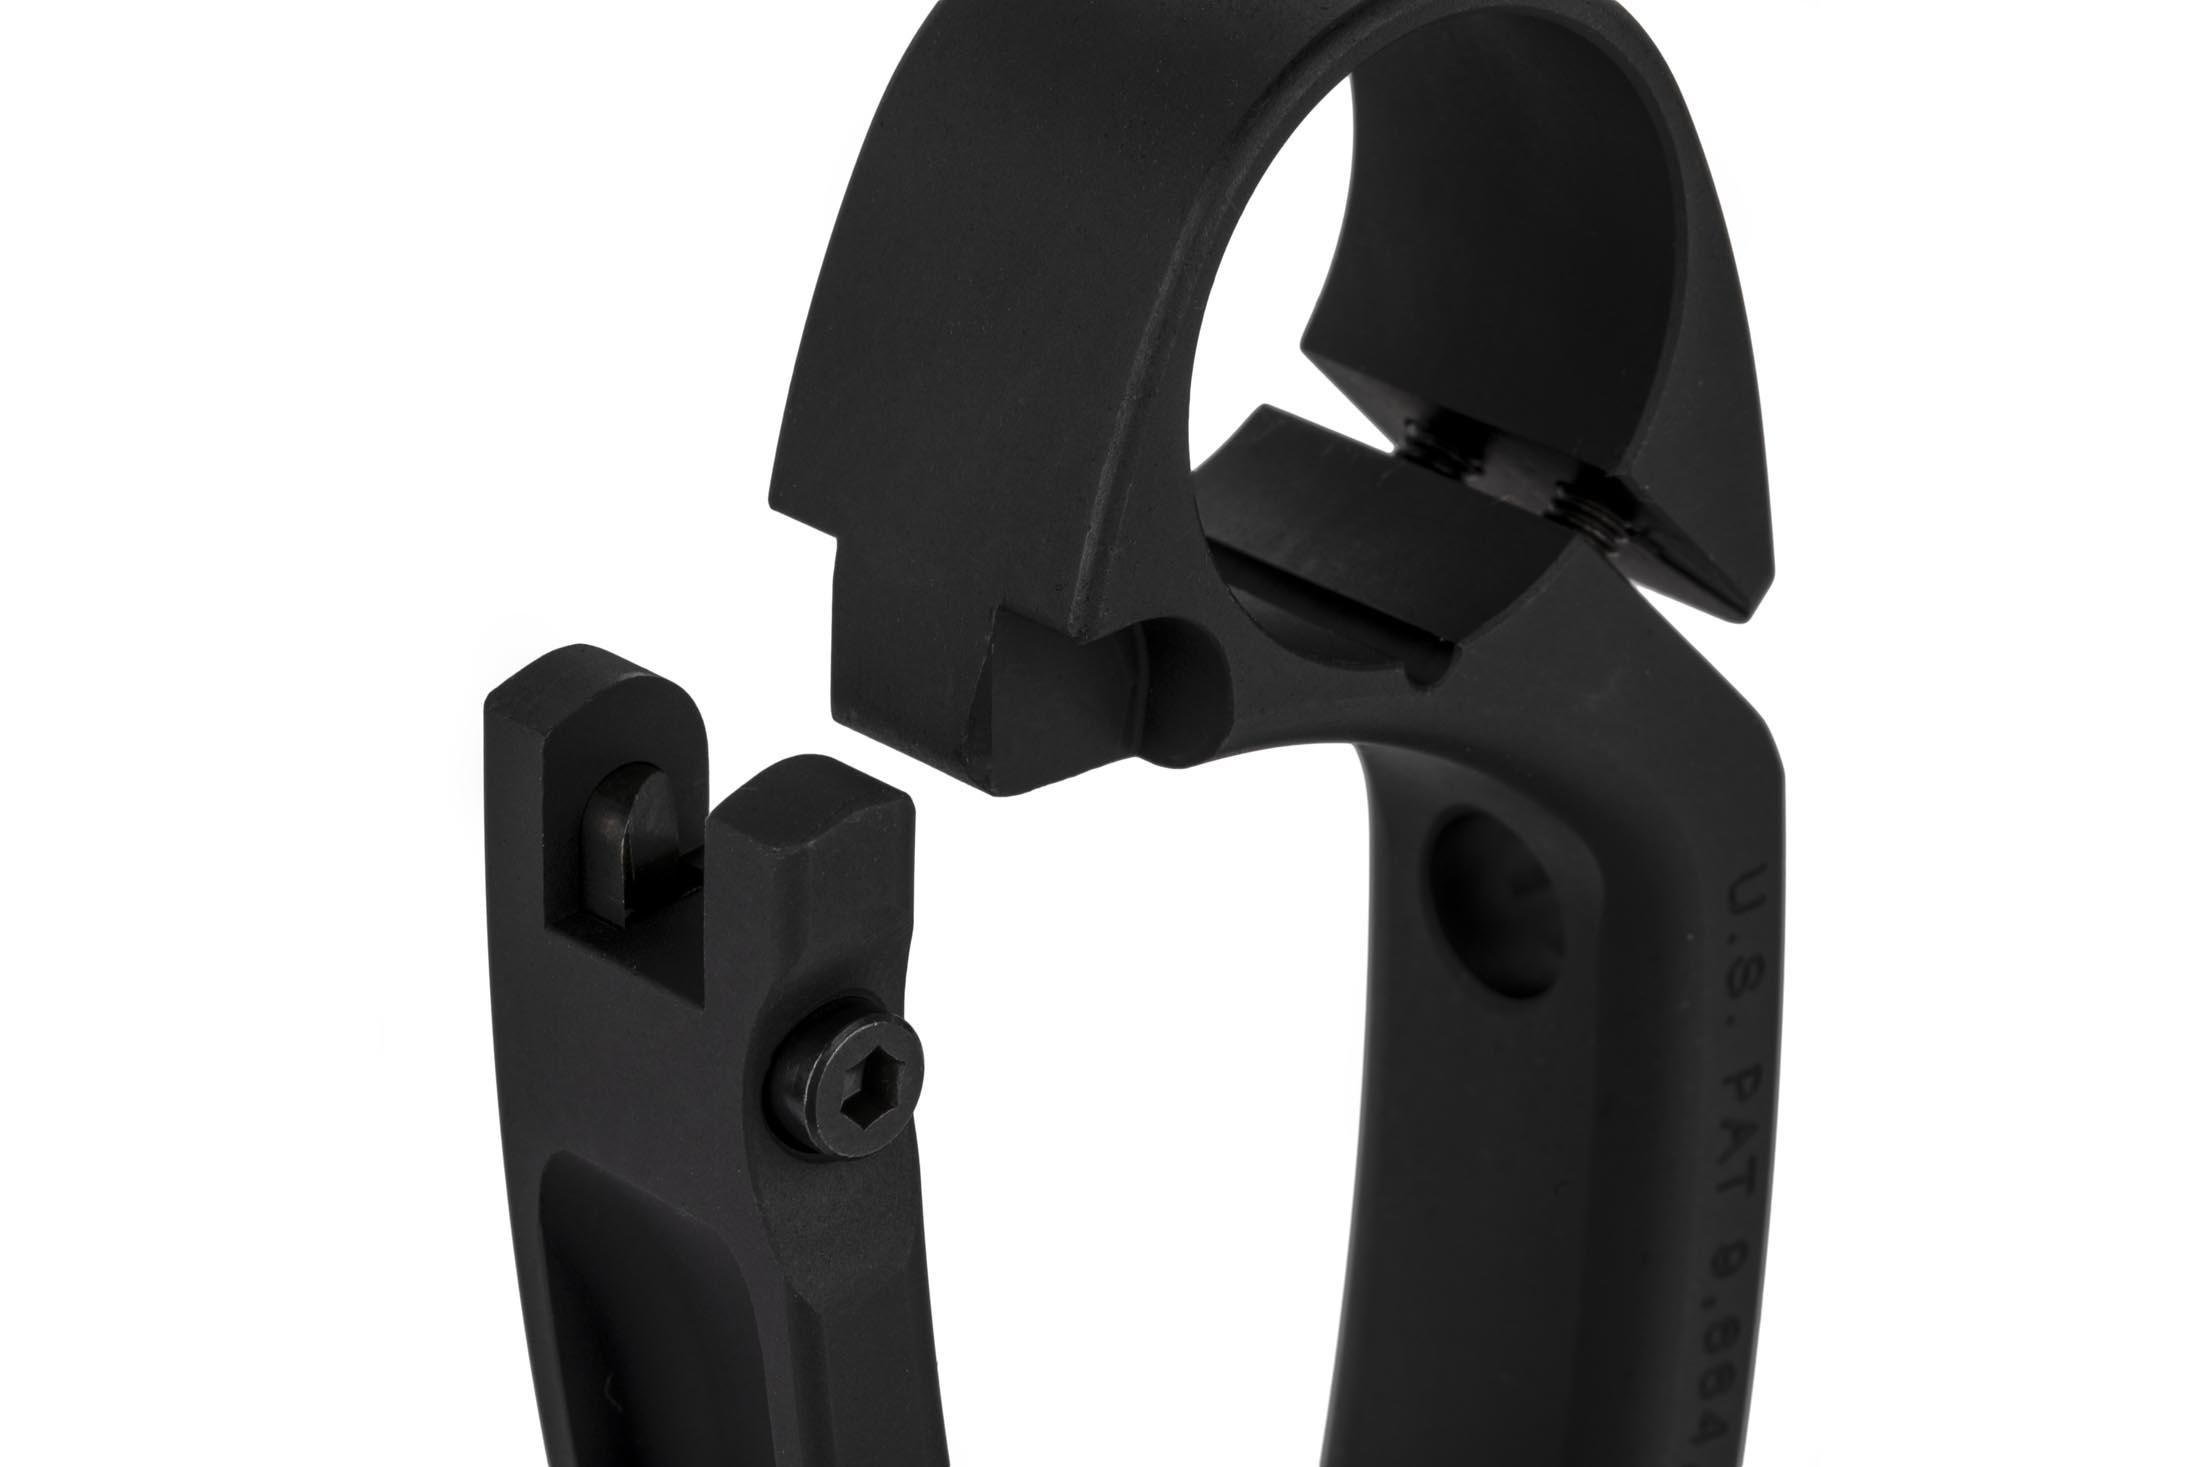 Gear Head Works Tailhook Mod 1 Pistol Brace - Black